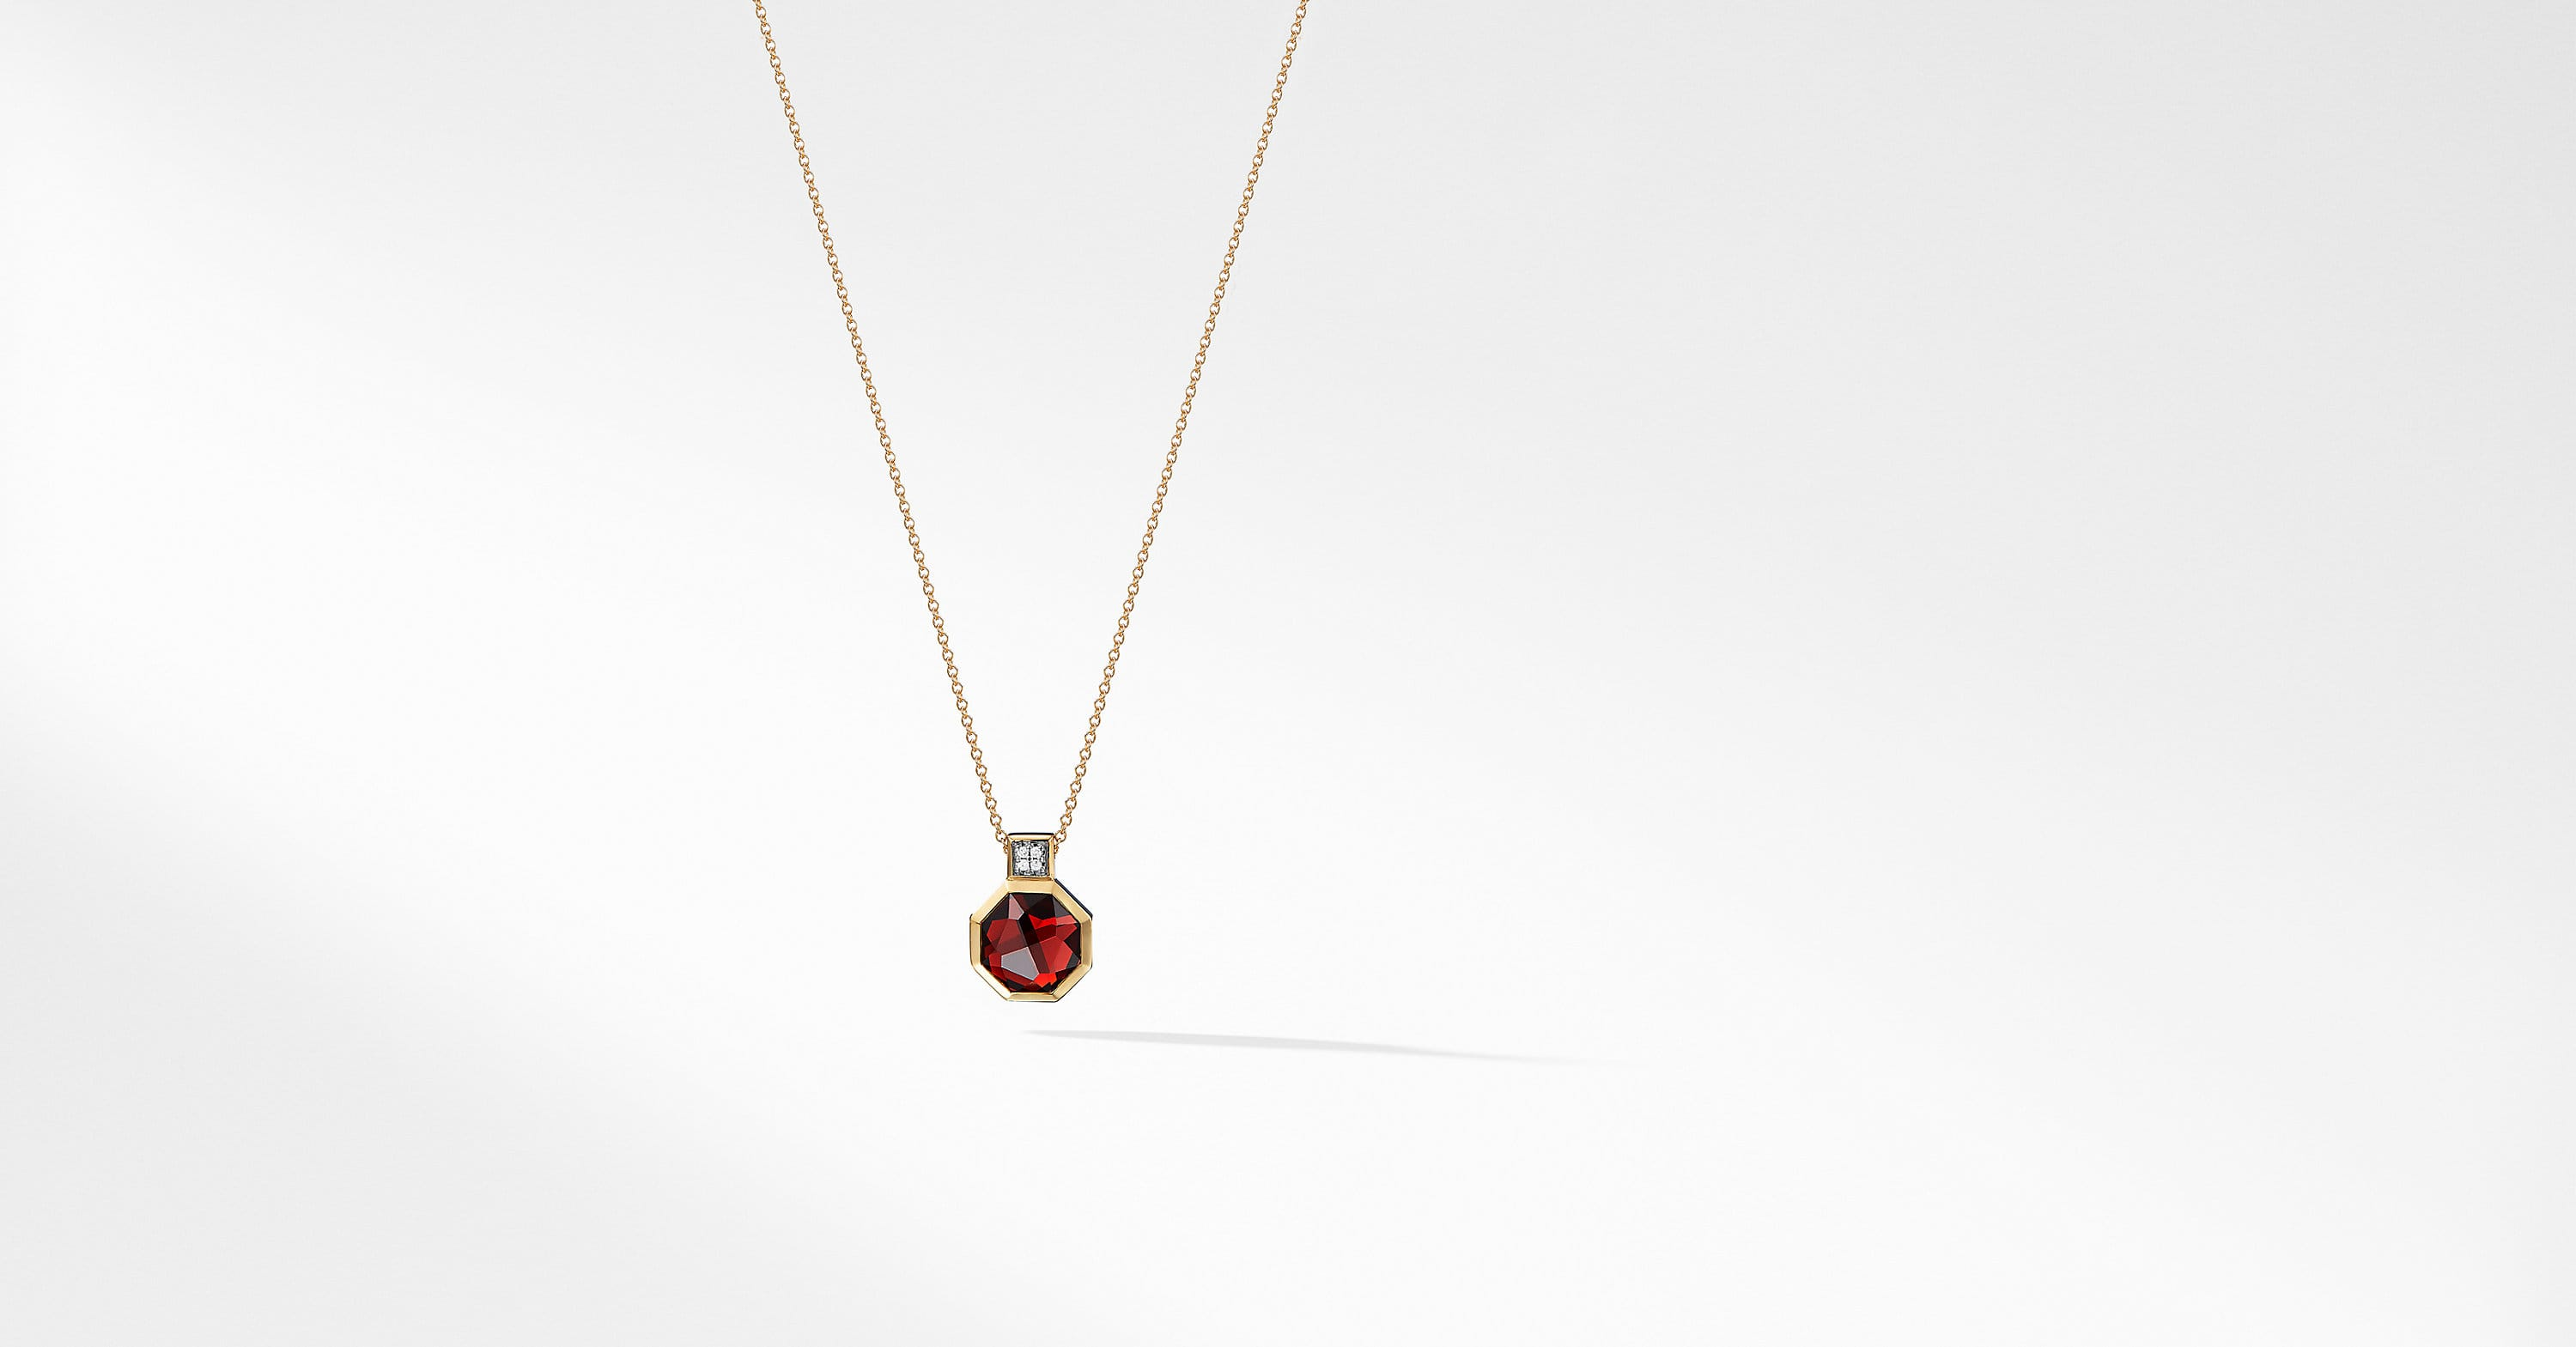 Guilin Octagon Pendant Necklace with Diamonds in 18K Gold